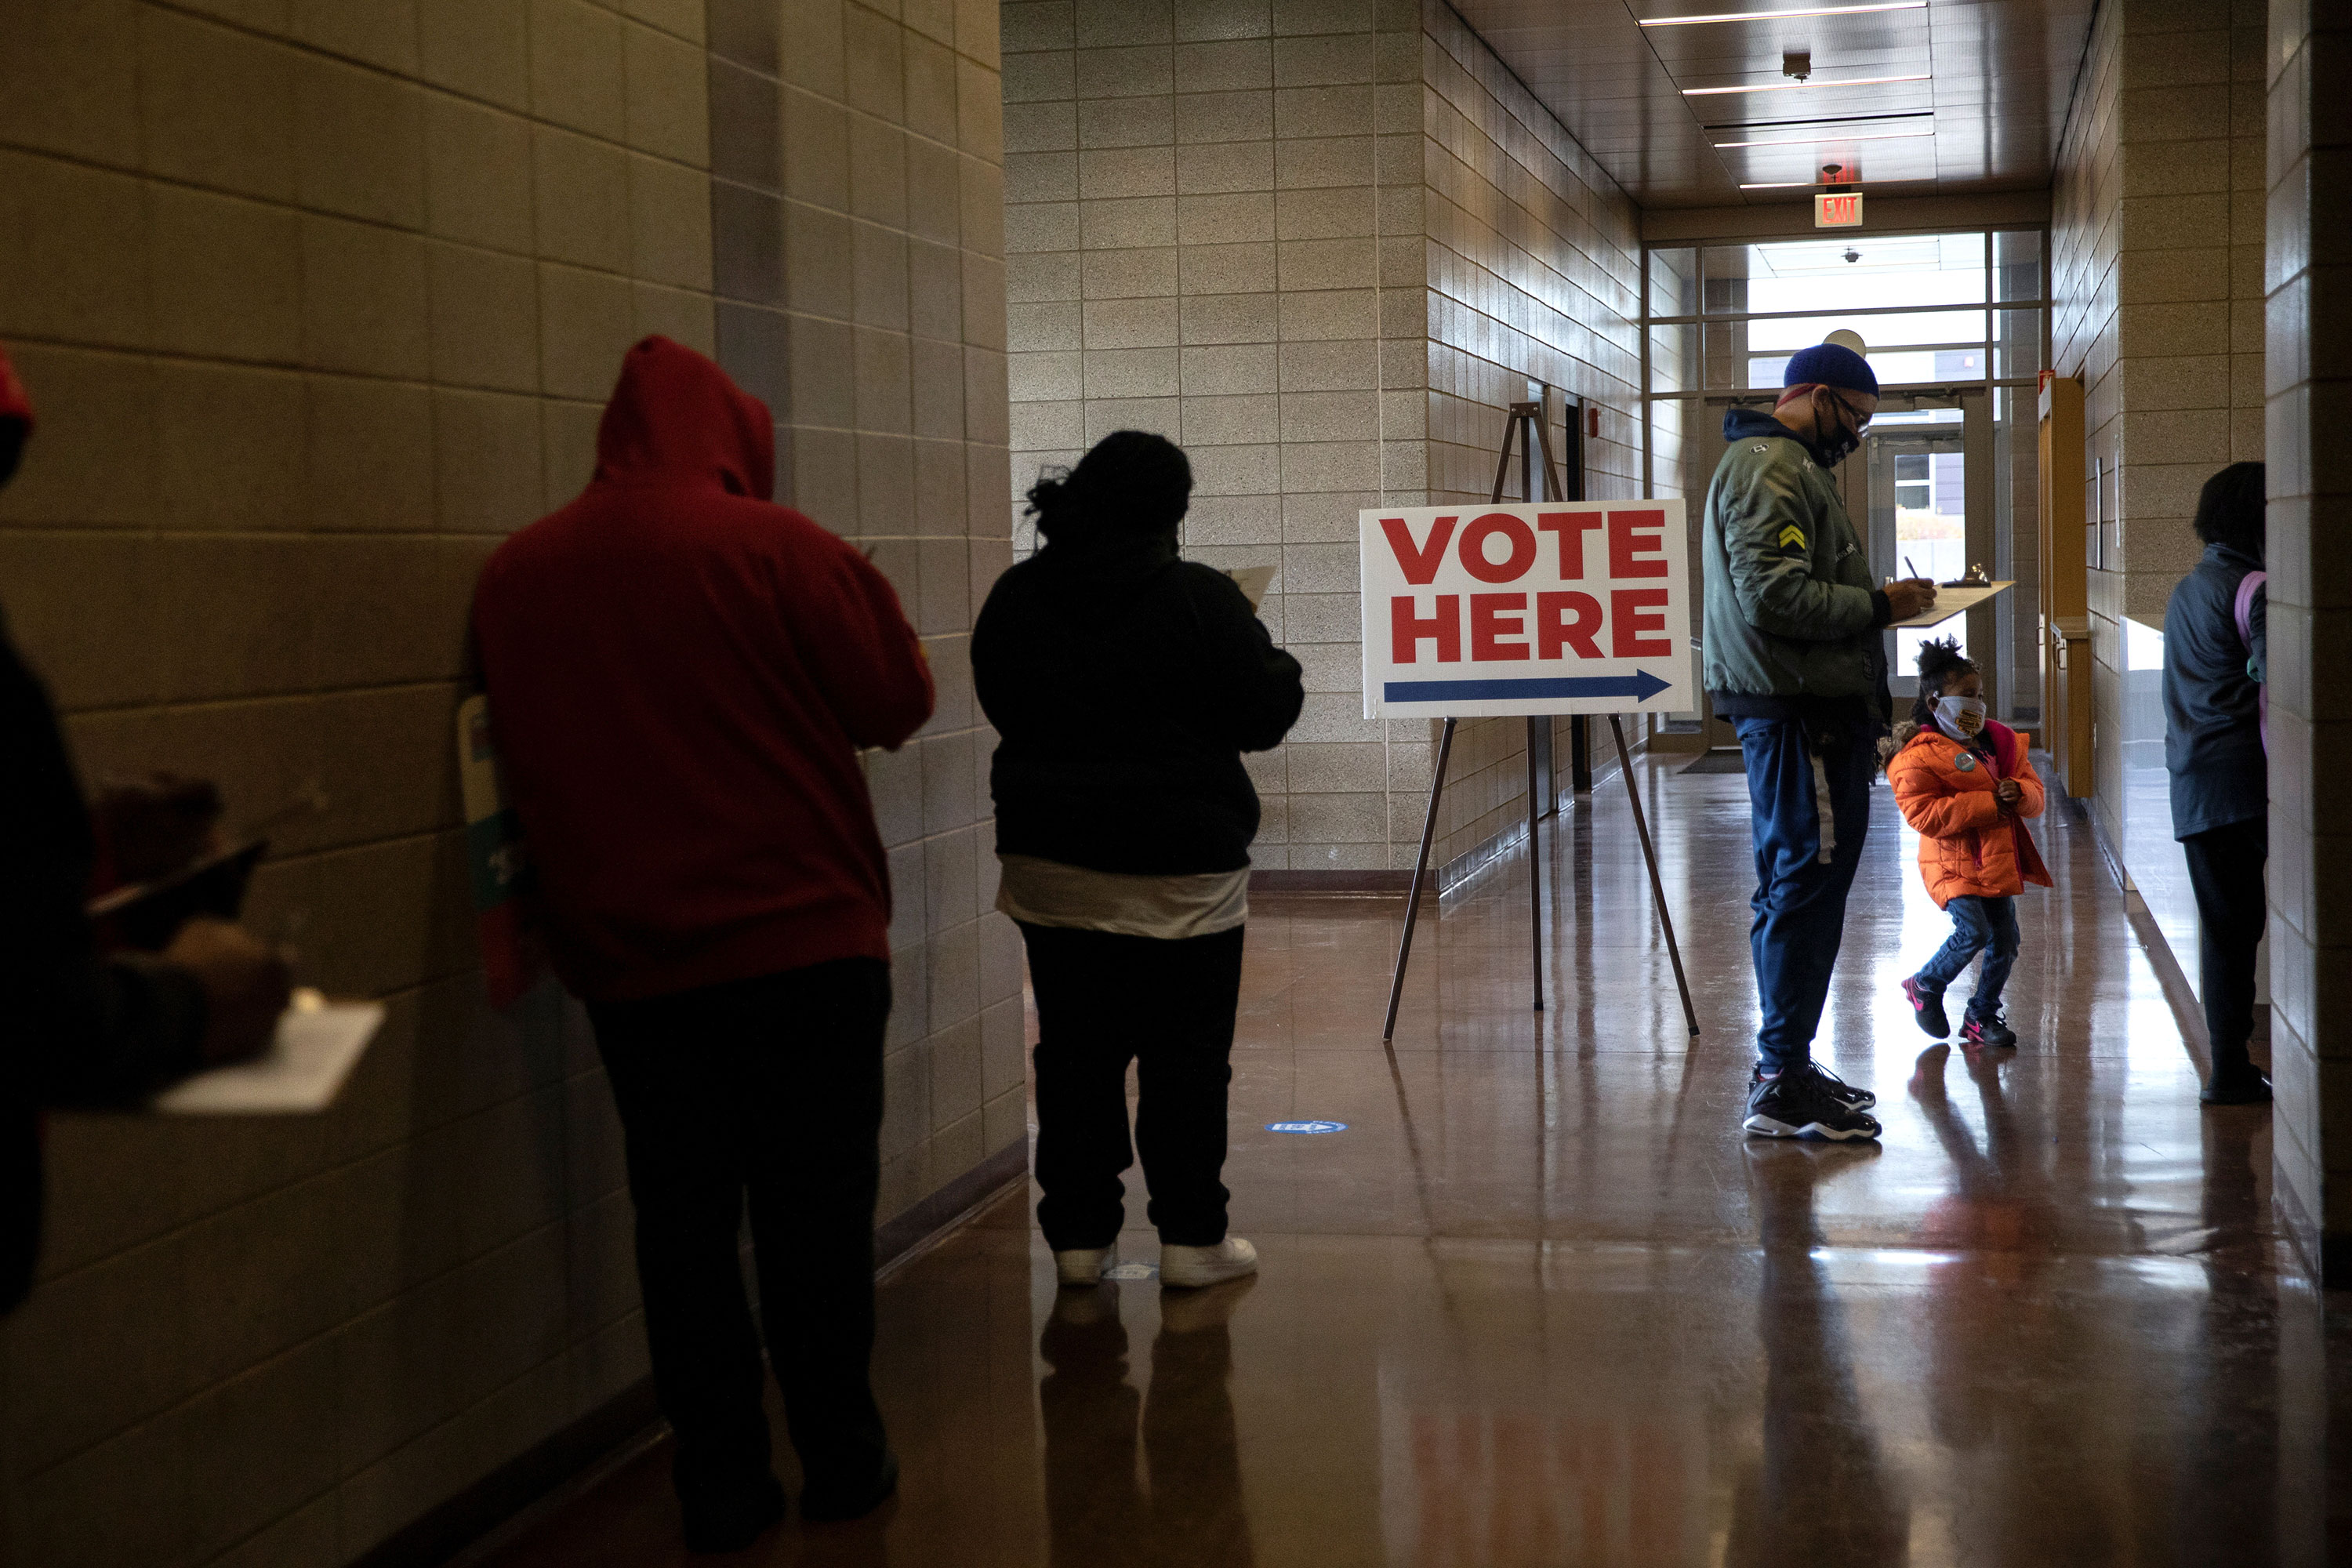 Michigan judge strikes down ban on open carry of guns at polling places on Election Day